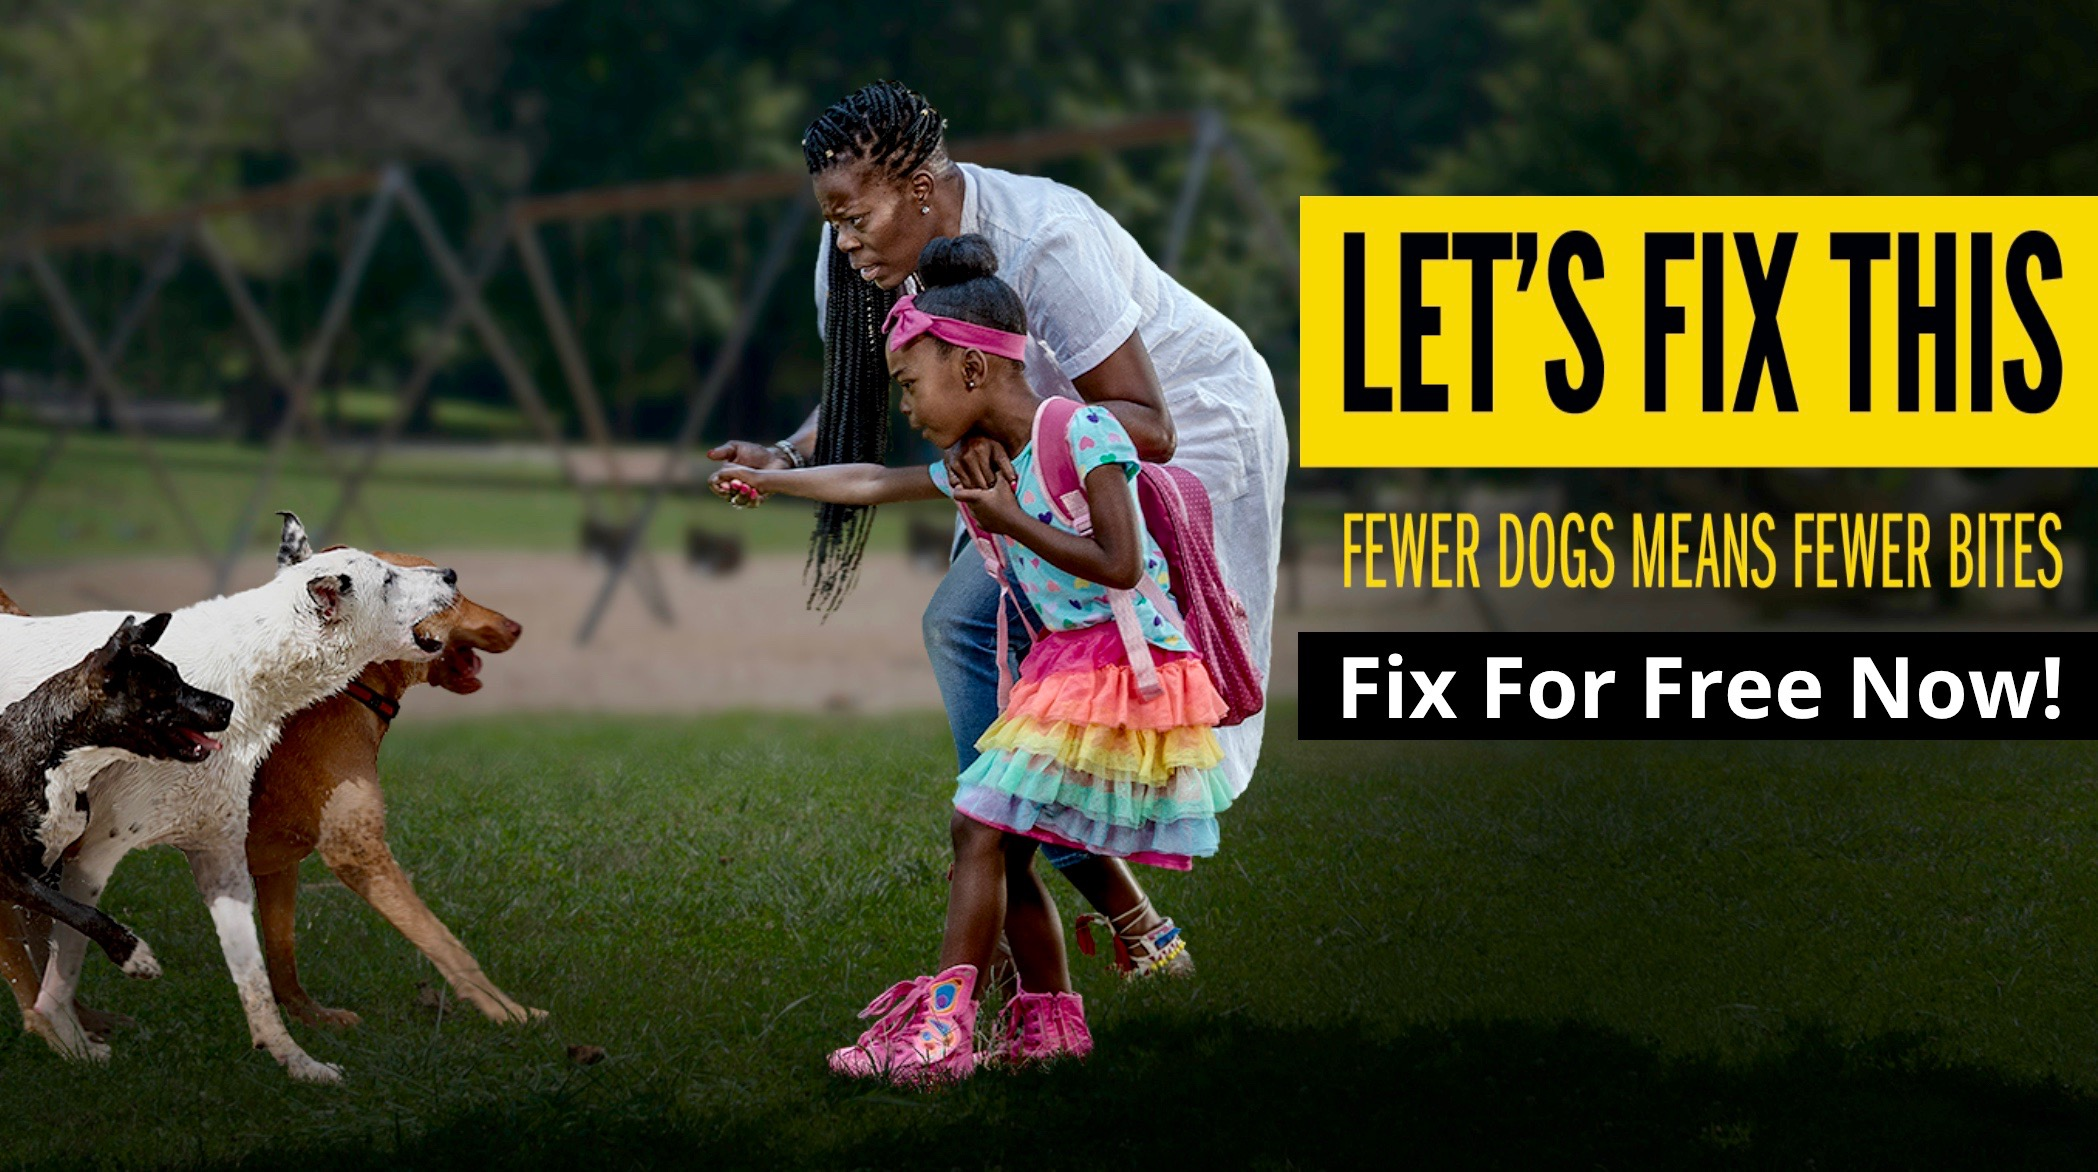 Fewer Dogs Means Fewer Bits